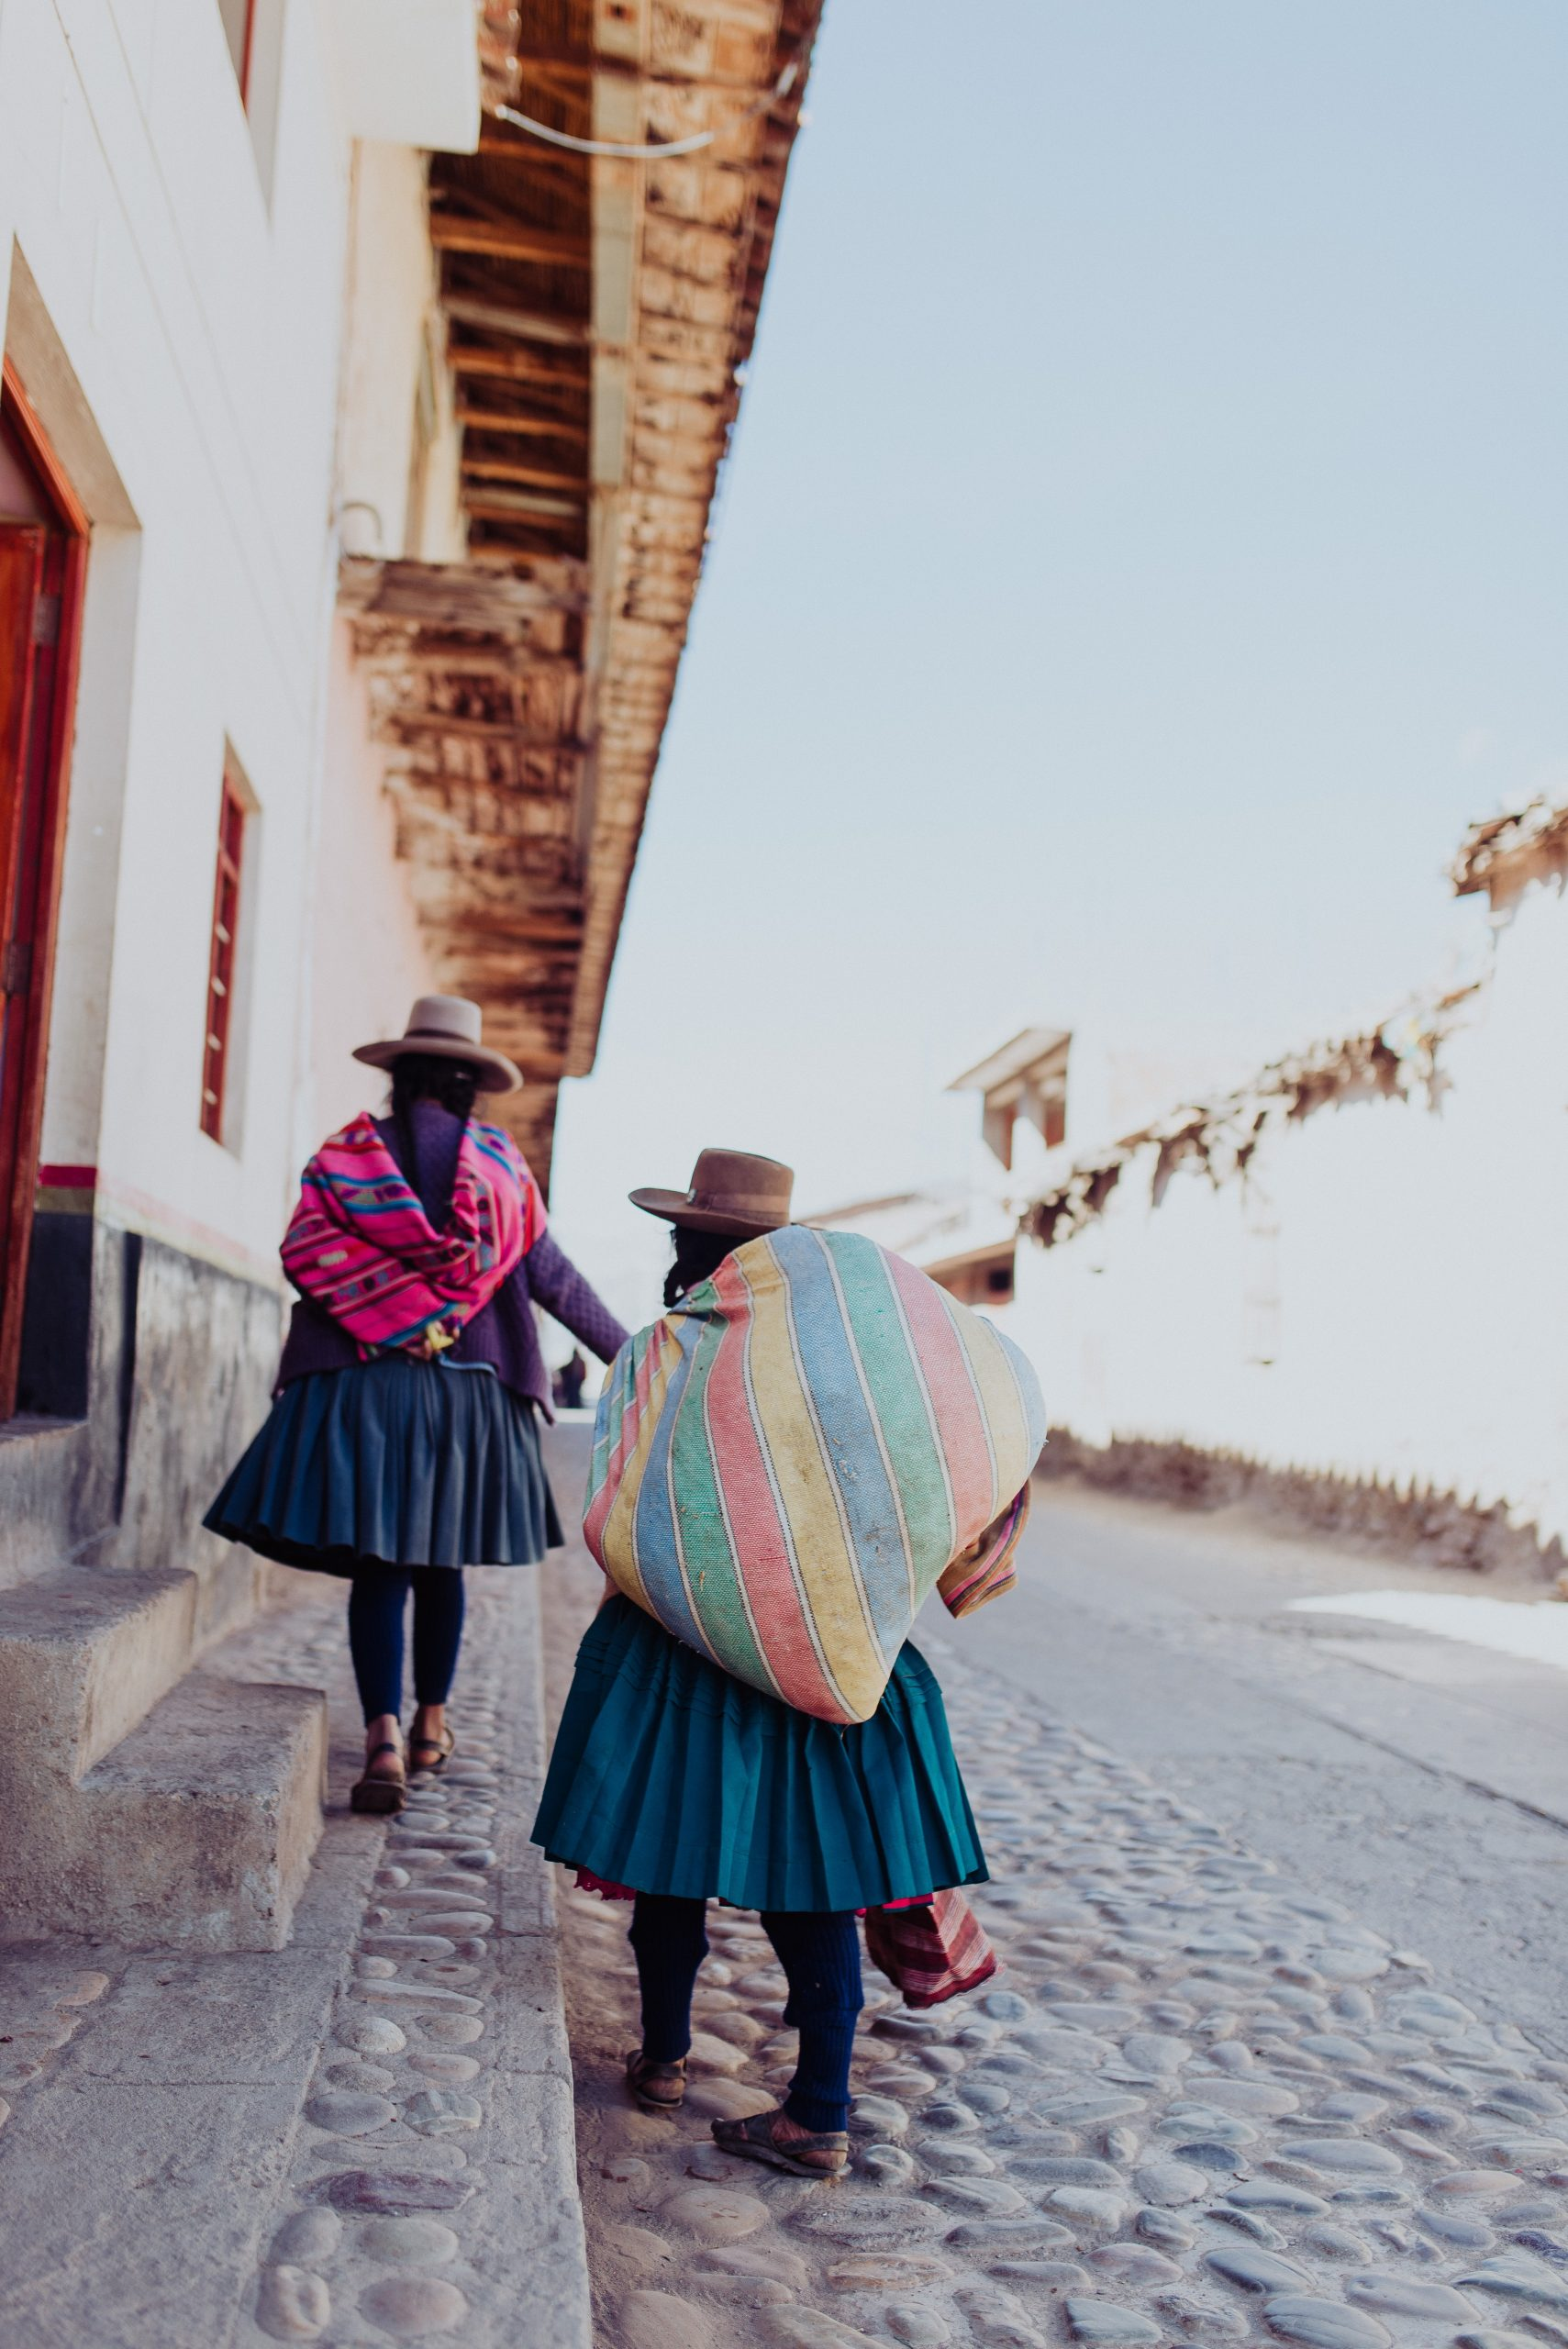 Decision-making about women in Peru